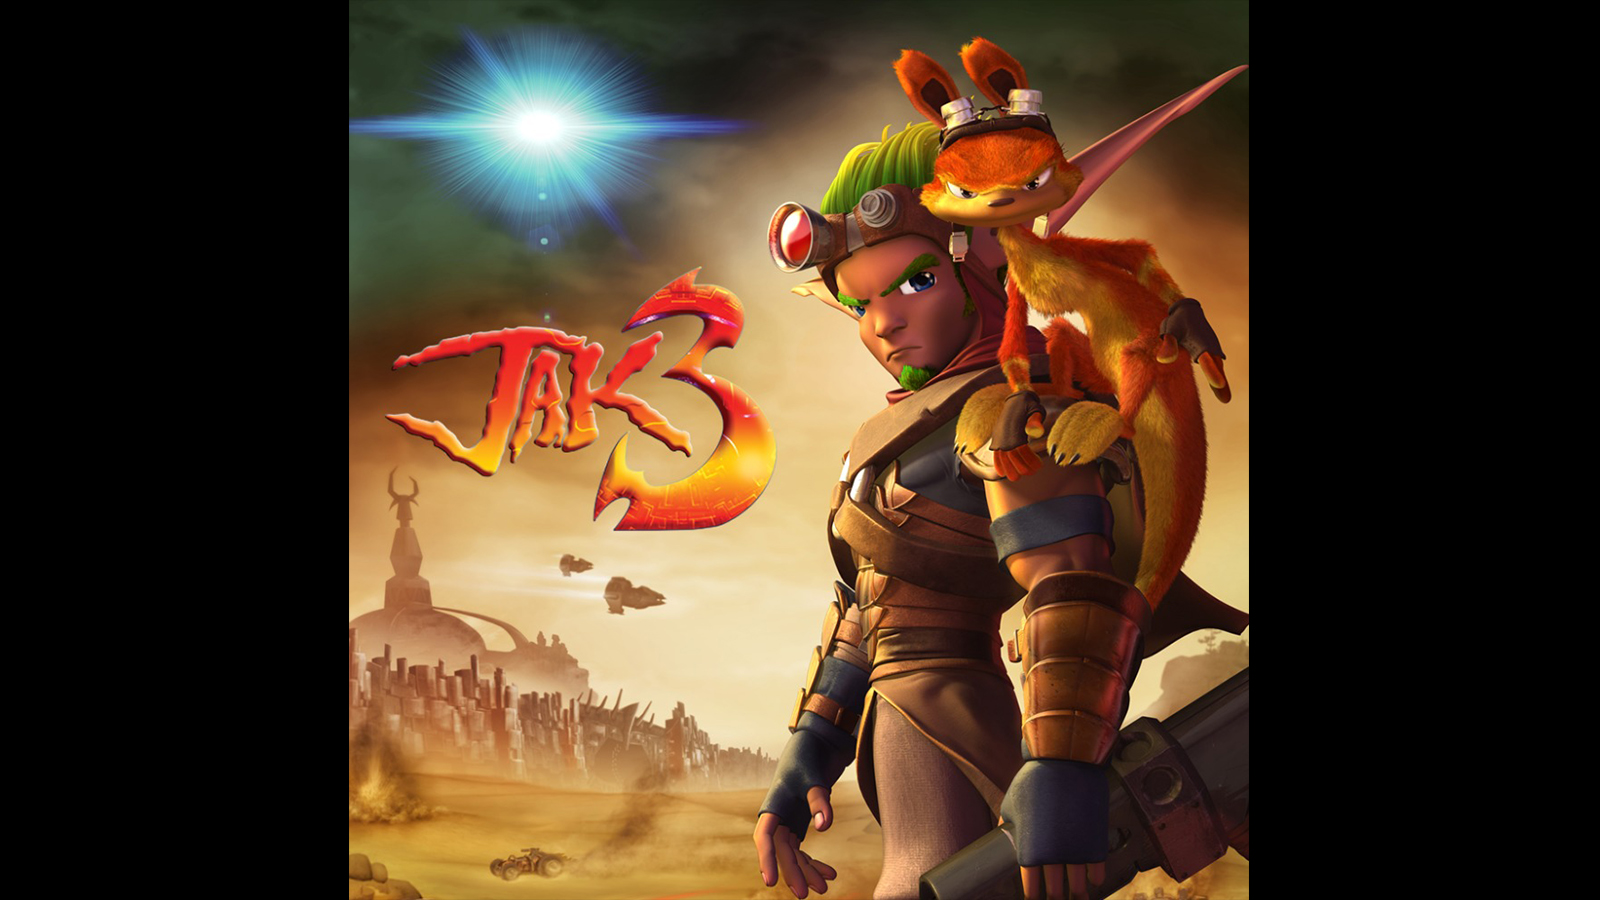 Jak And Daxter Overview World Map Ps2 Playstation 2 Ps3: PS4 - PlayStation